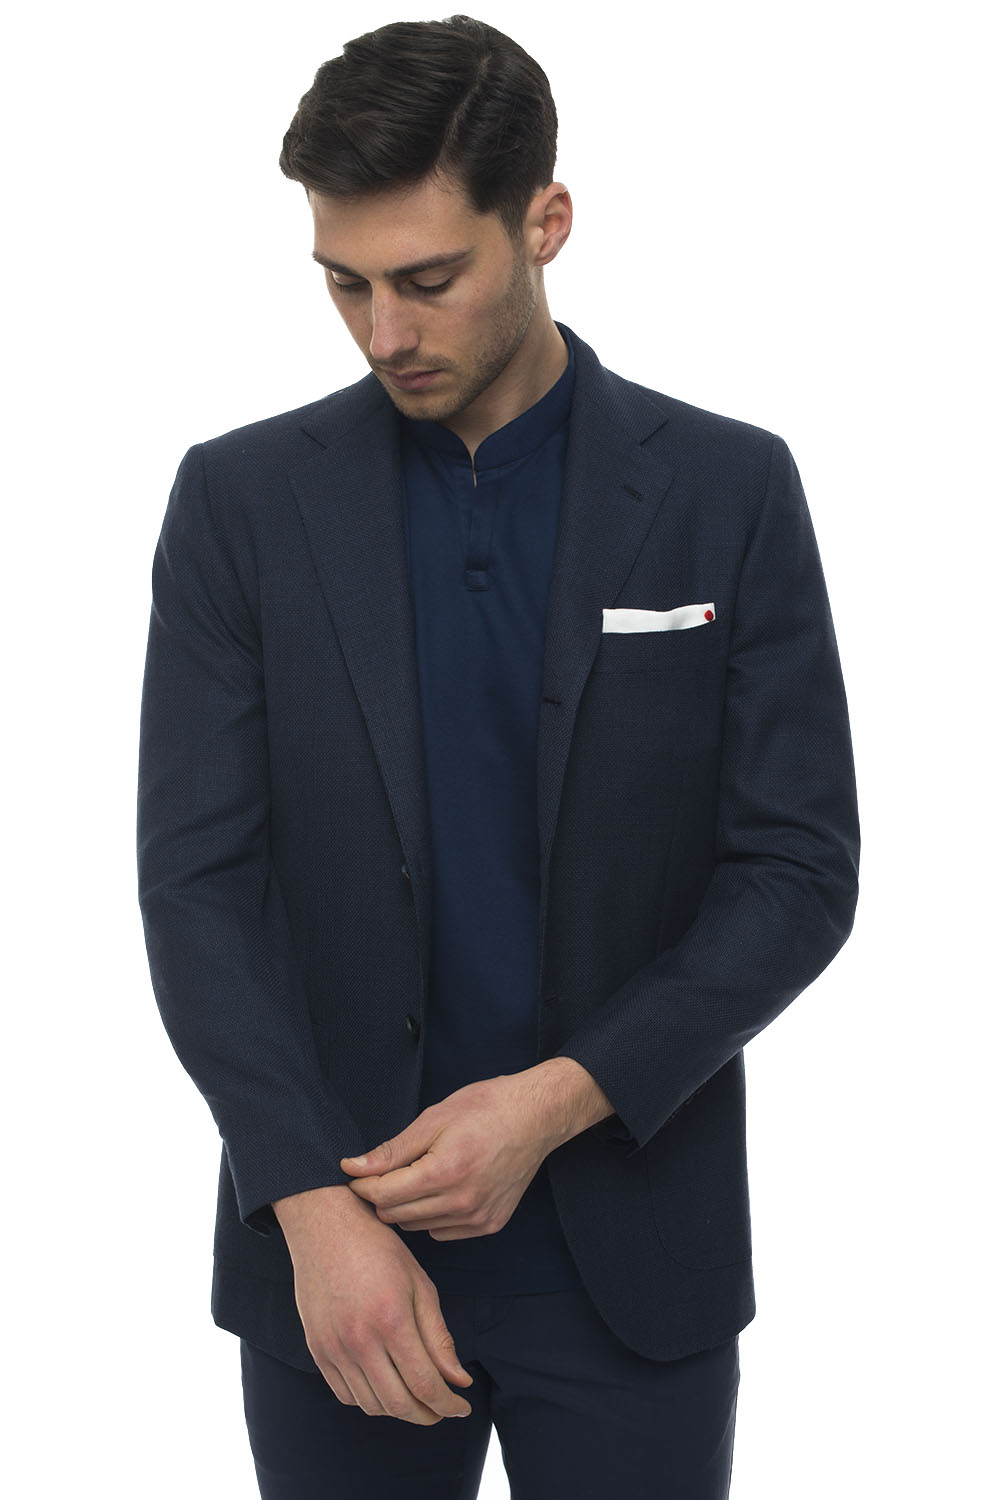 Kiton DECONSTRUCTED-UNLINED BLAZER WITH 3 BUTTONS BLUE VIRGIN WOOL MAN